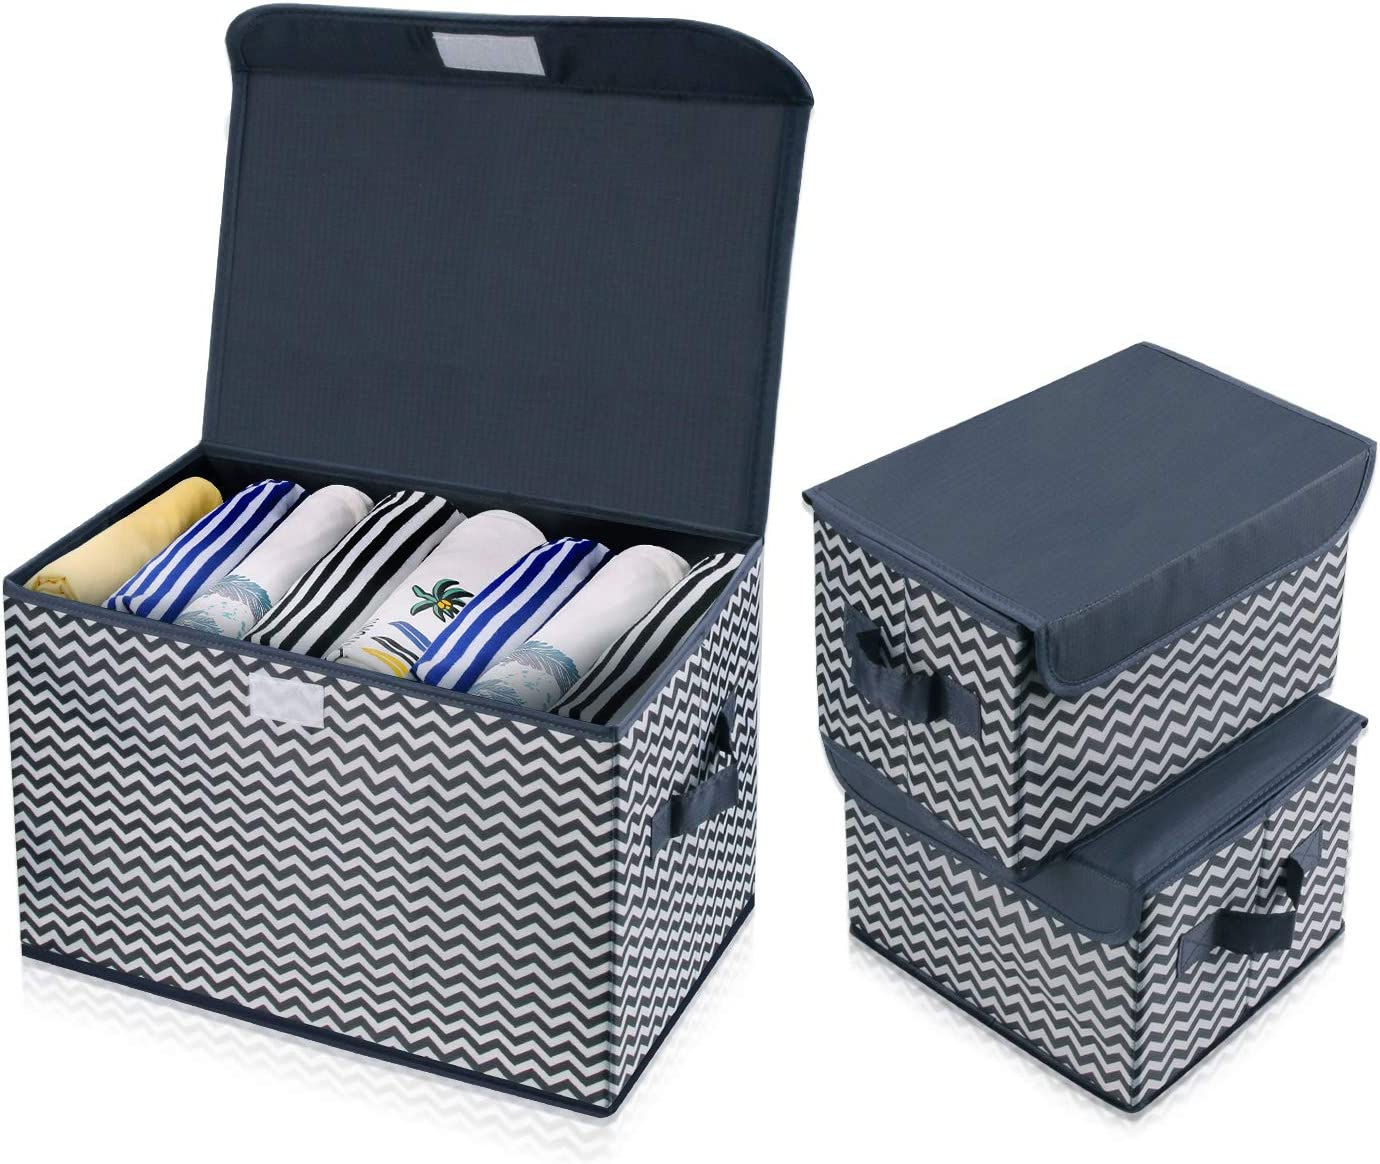 Closet Books Beige Bedroom DIMJ 3 Pack Foldable Storage Boxes with Lids Fabric Storage Organiser Box with Handle Large Storage Bins for Toys Home